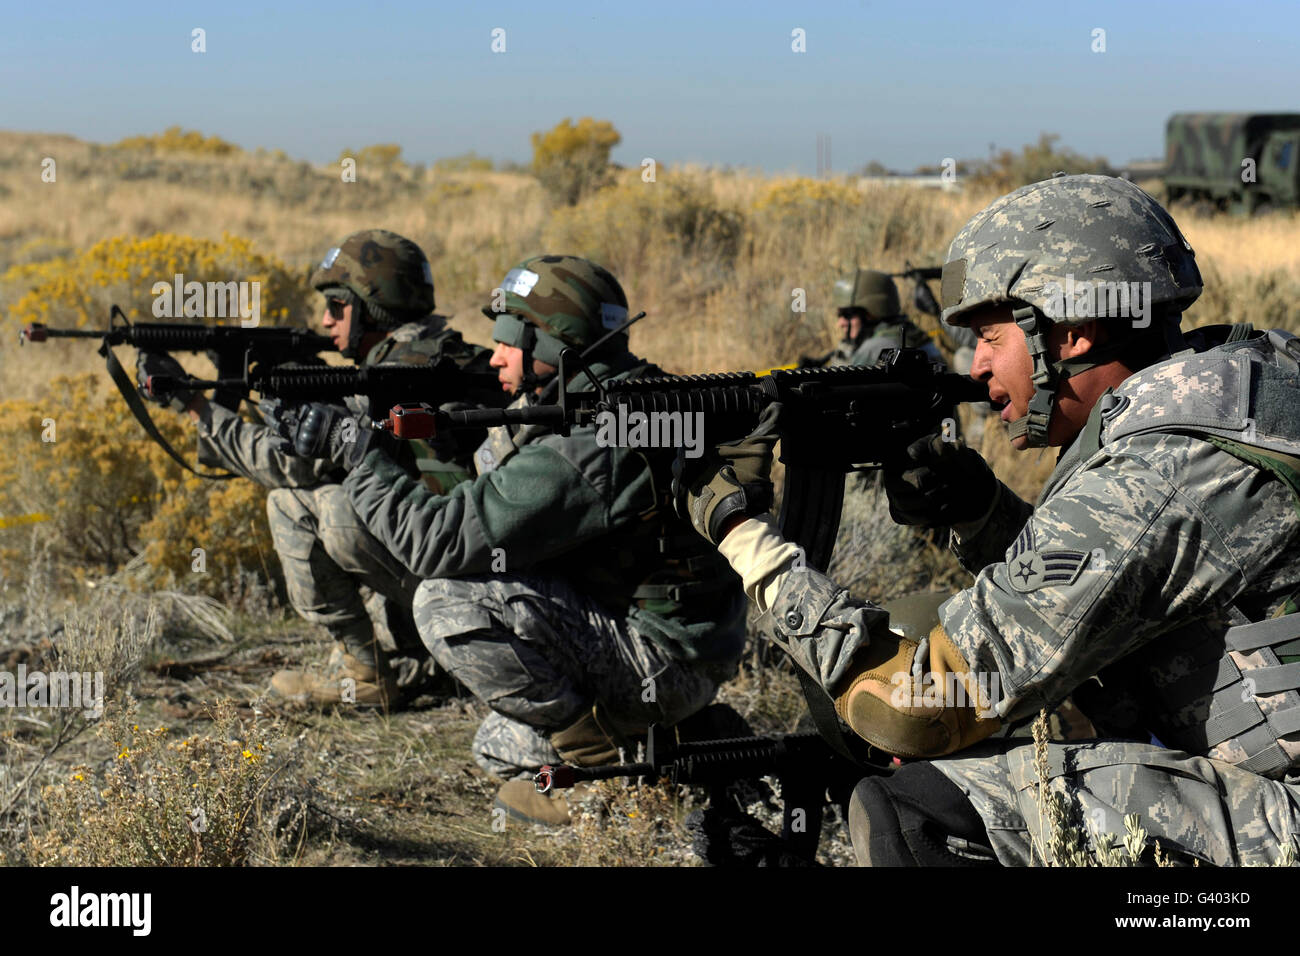 U.S. Airmen fire blanks against simulated enemy forces. - Stock Image